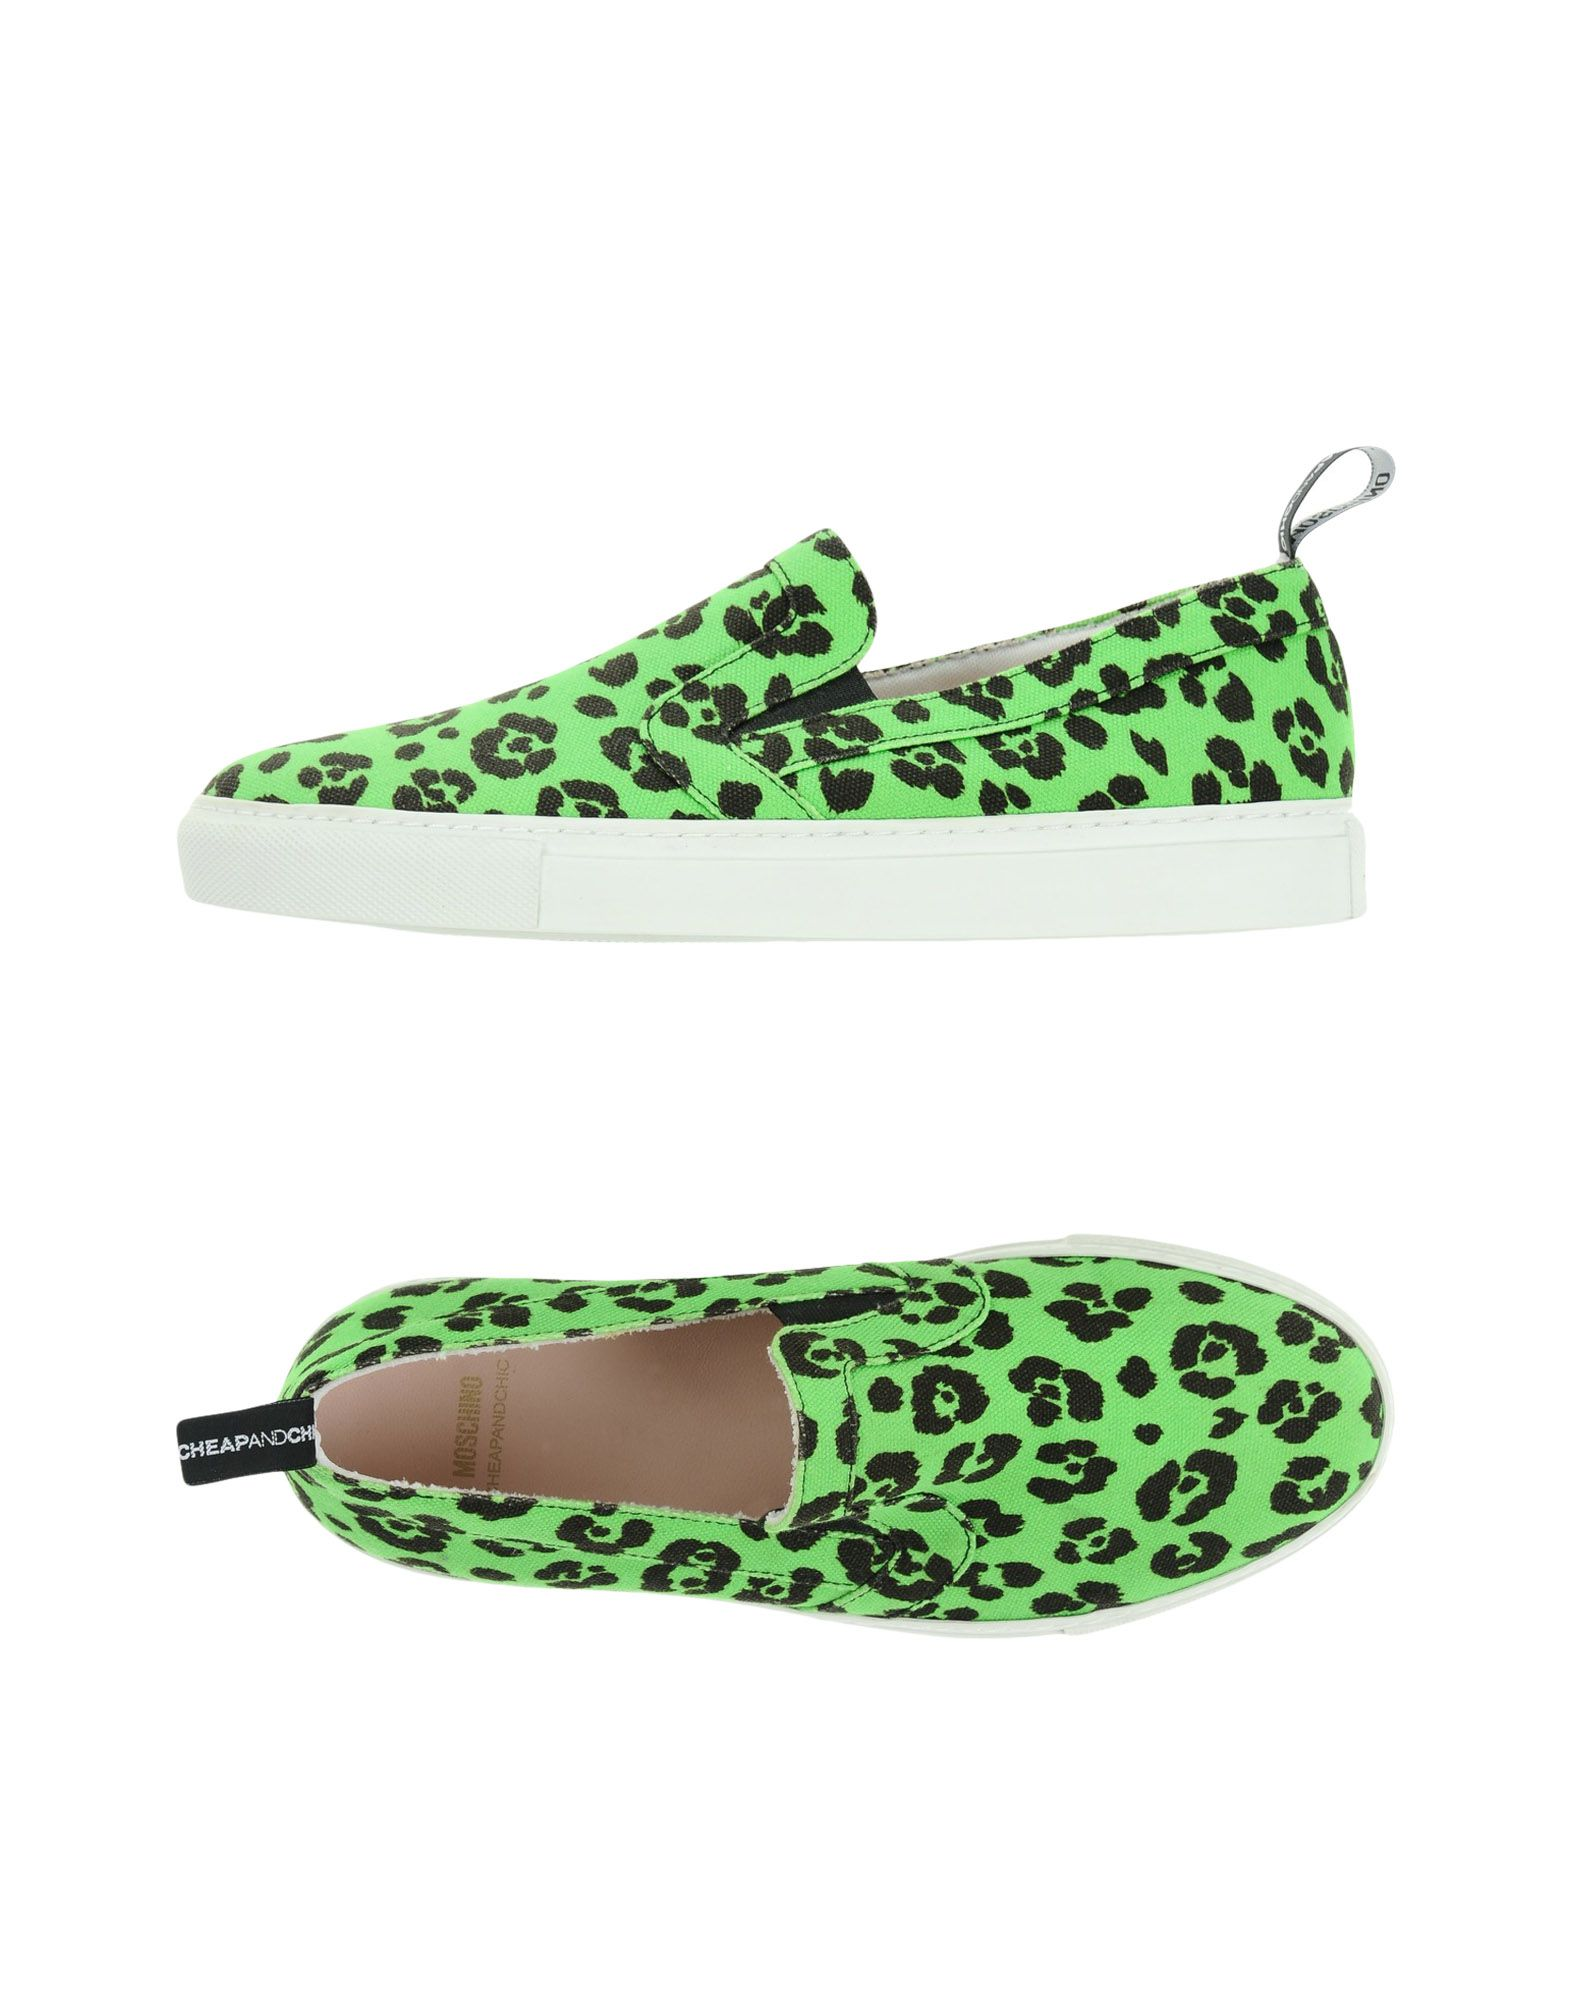 Sneakers Moschino Cheap And Chic Femme - Sneakers Moschino Cheap And Chic sur